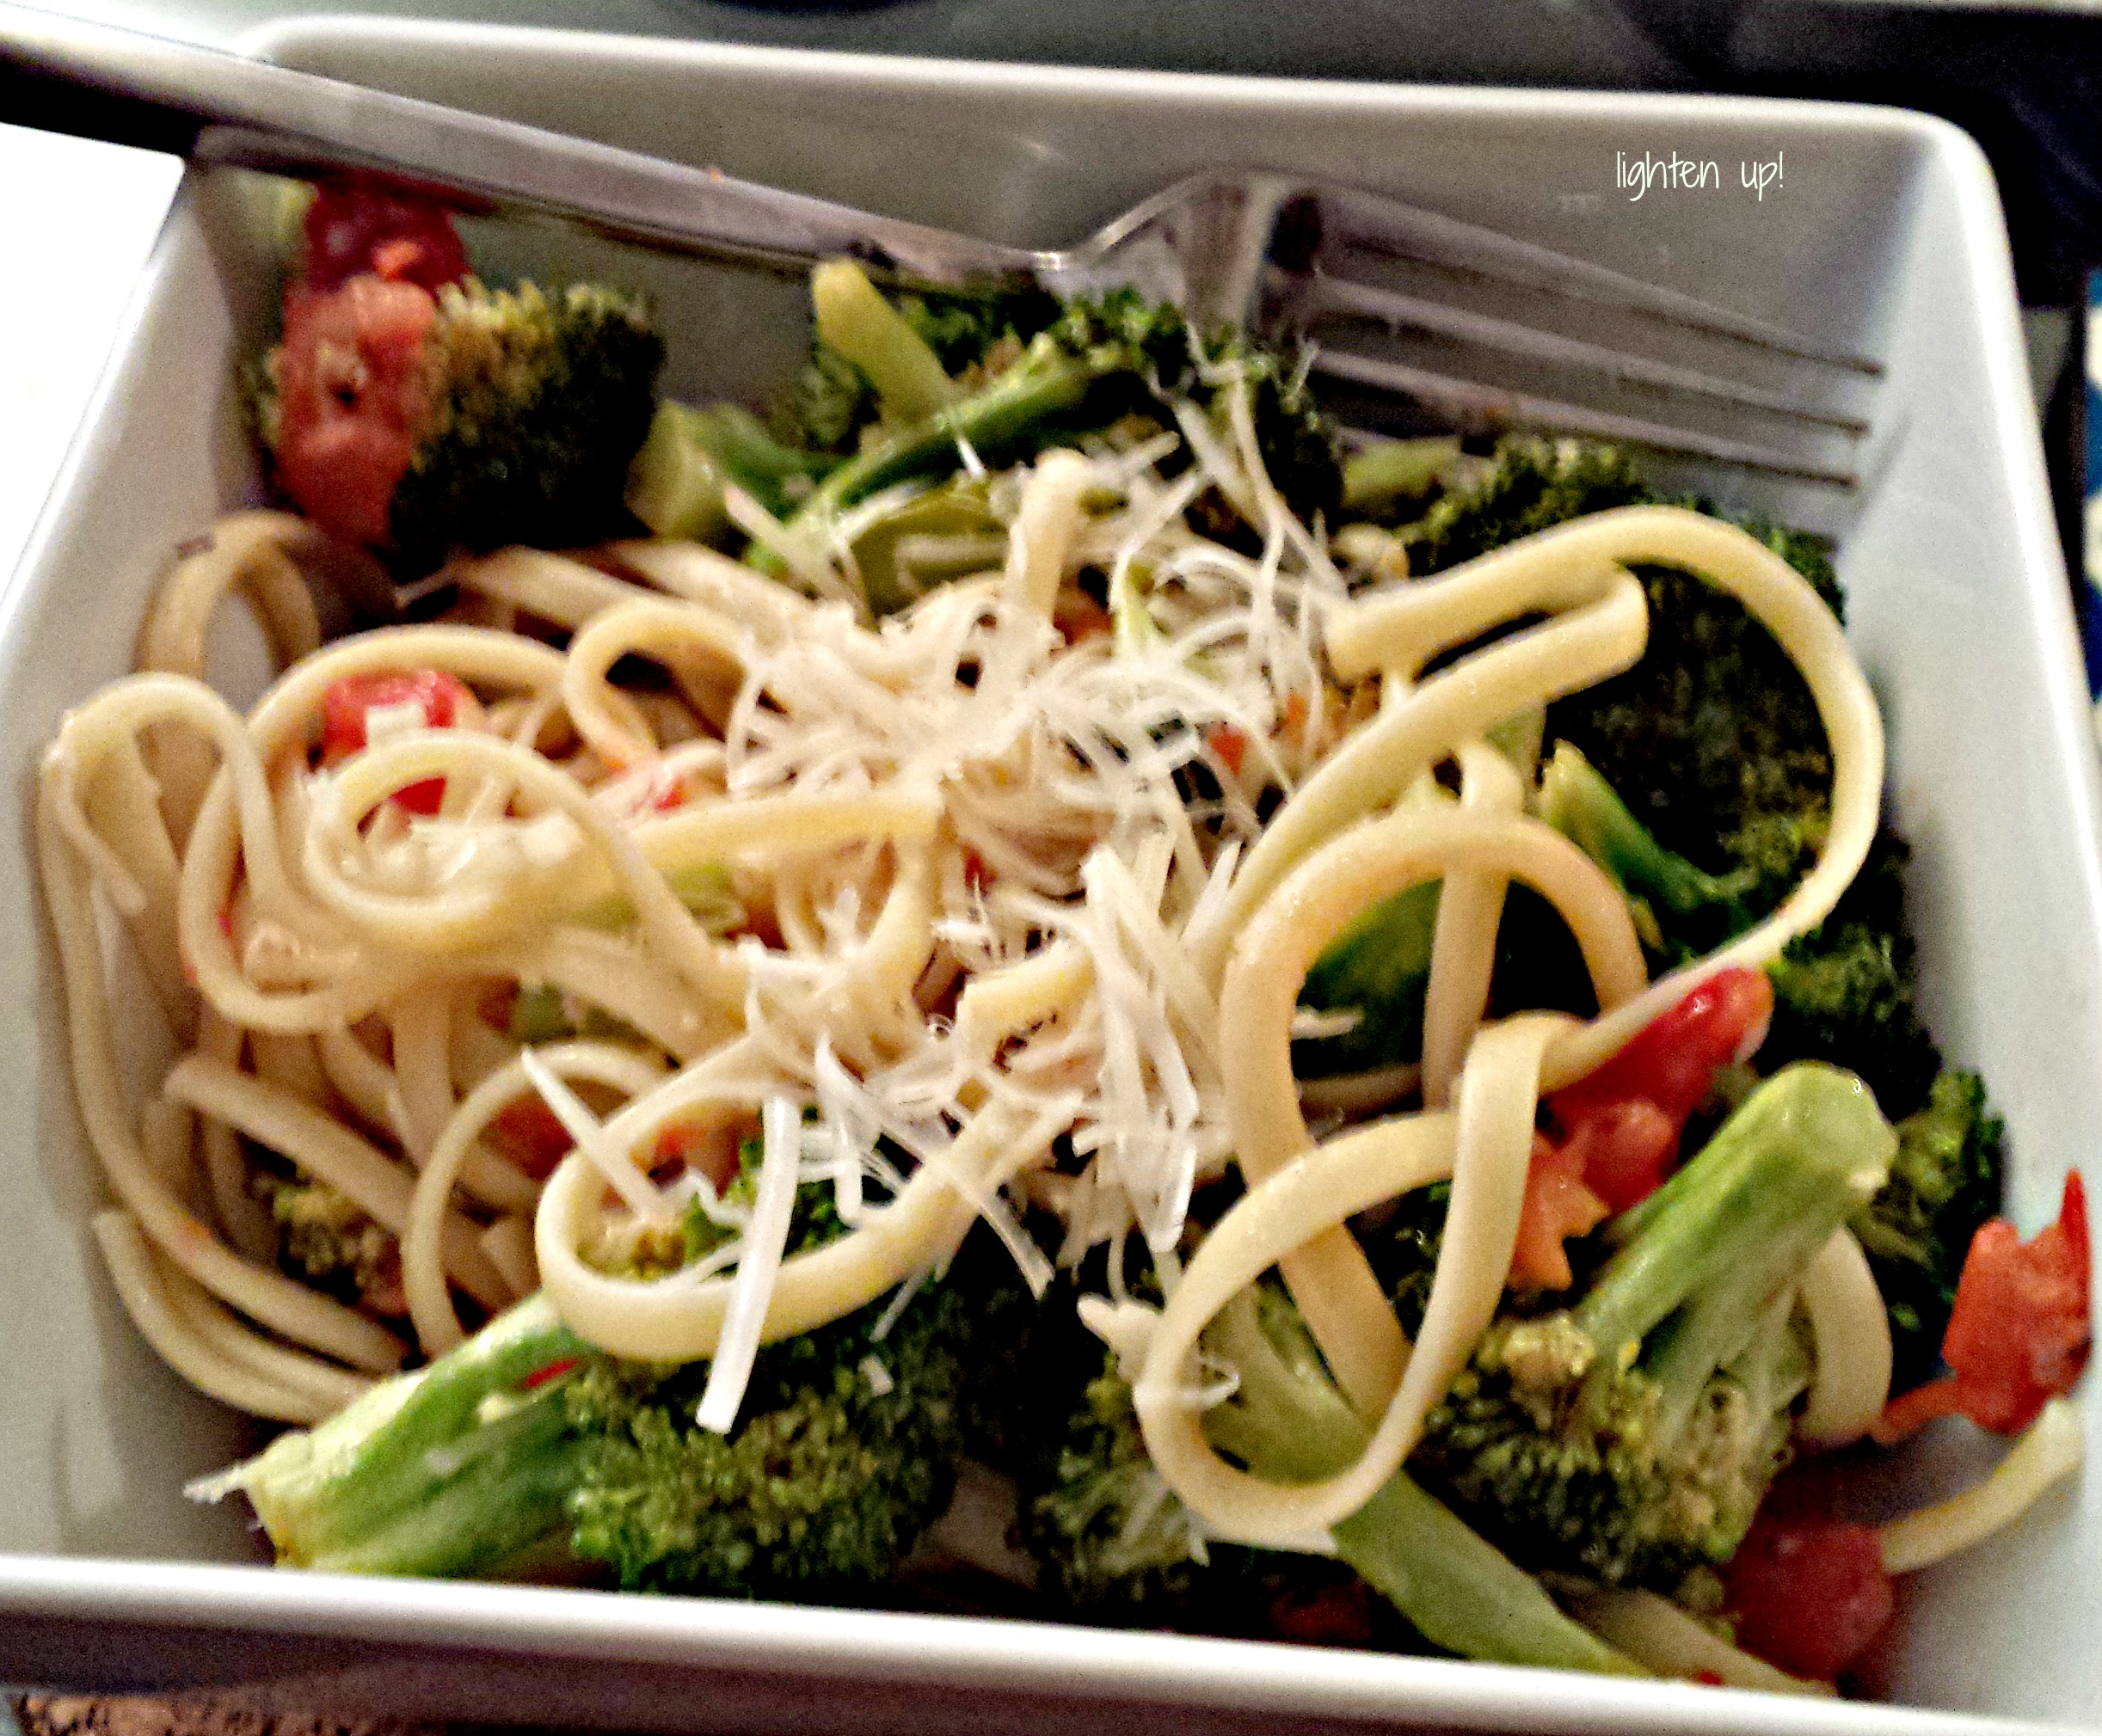 Lemon linguine with broccoli and tomatoes | Lighten Up!